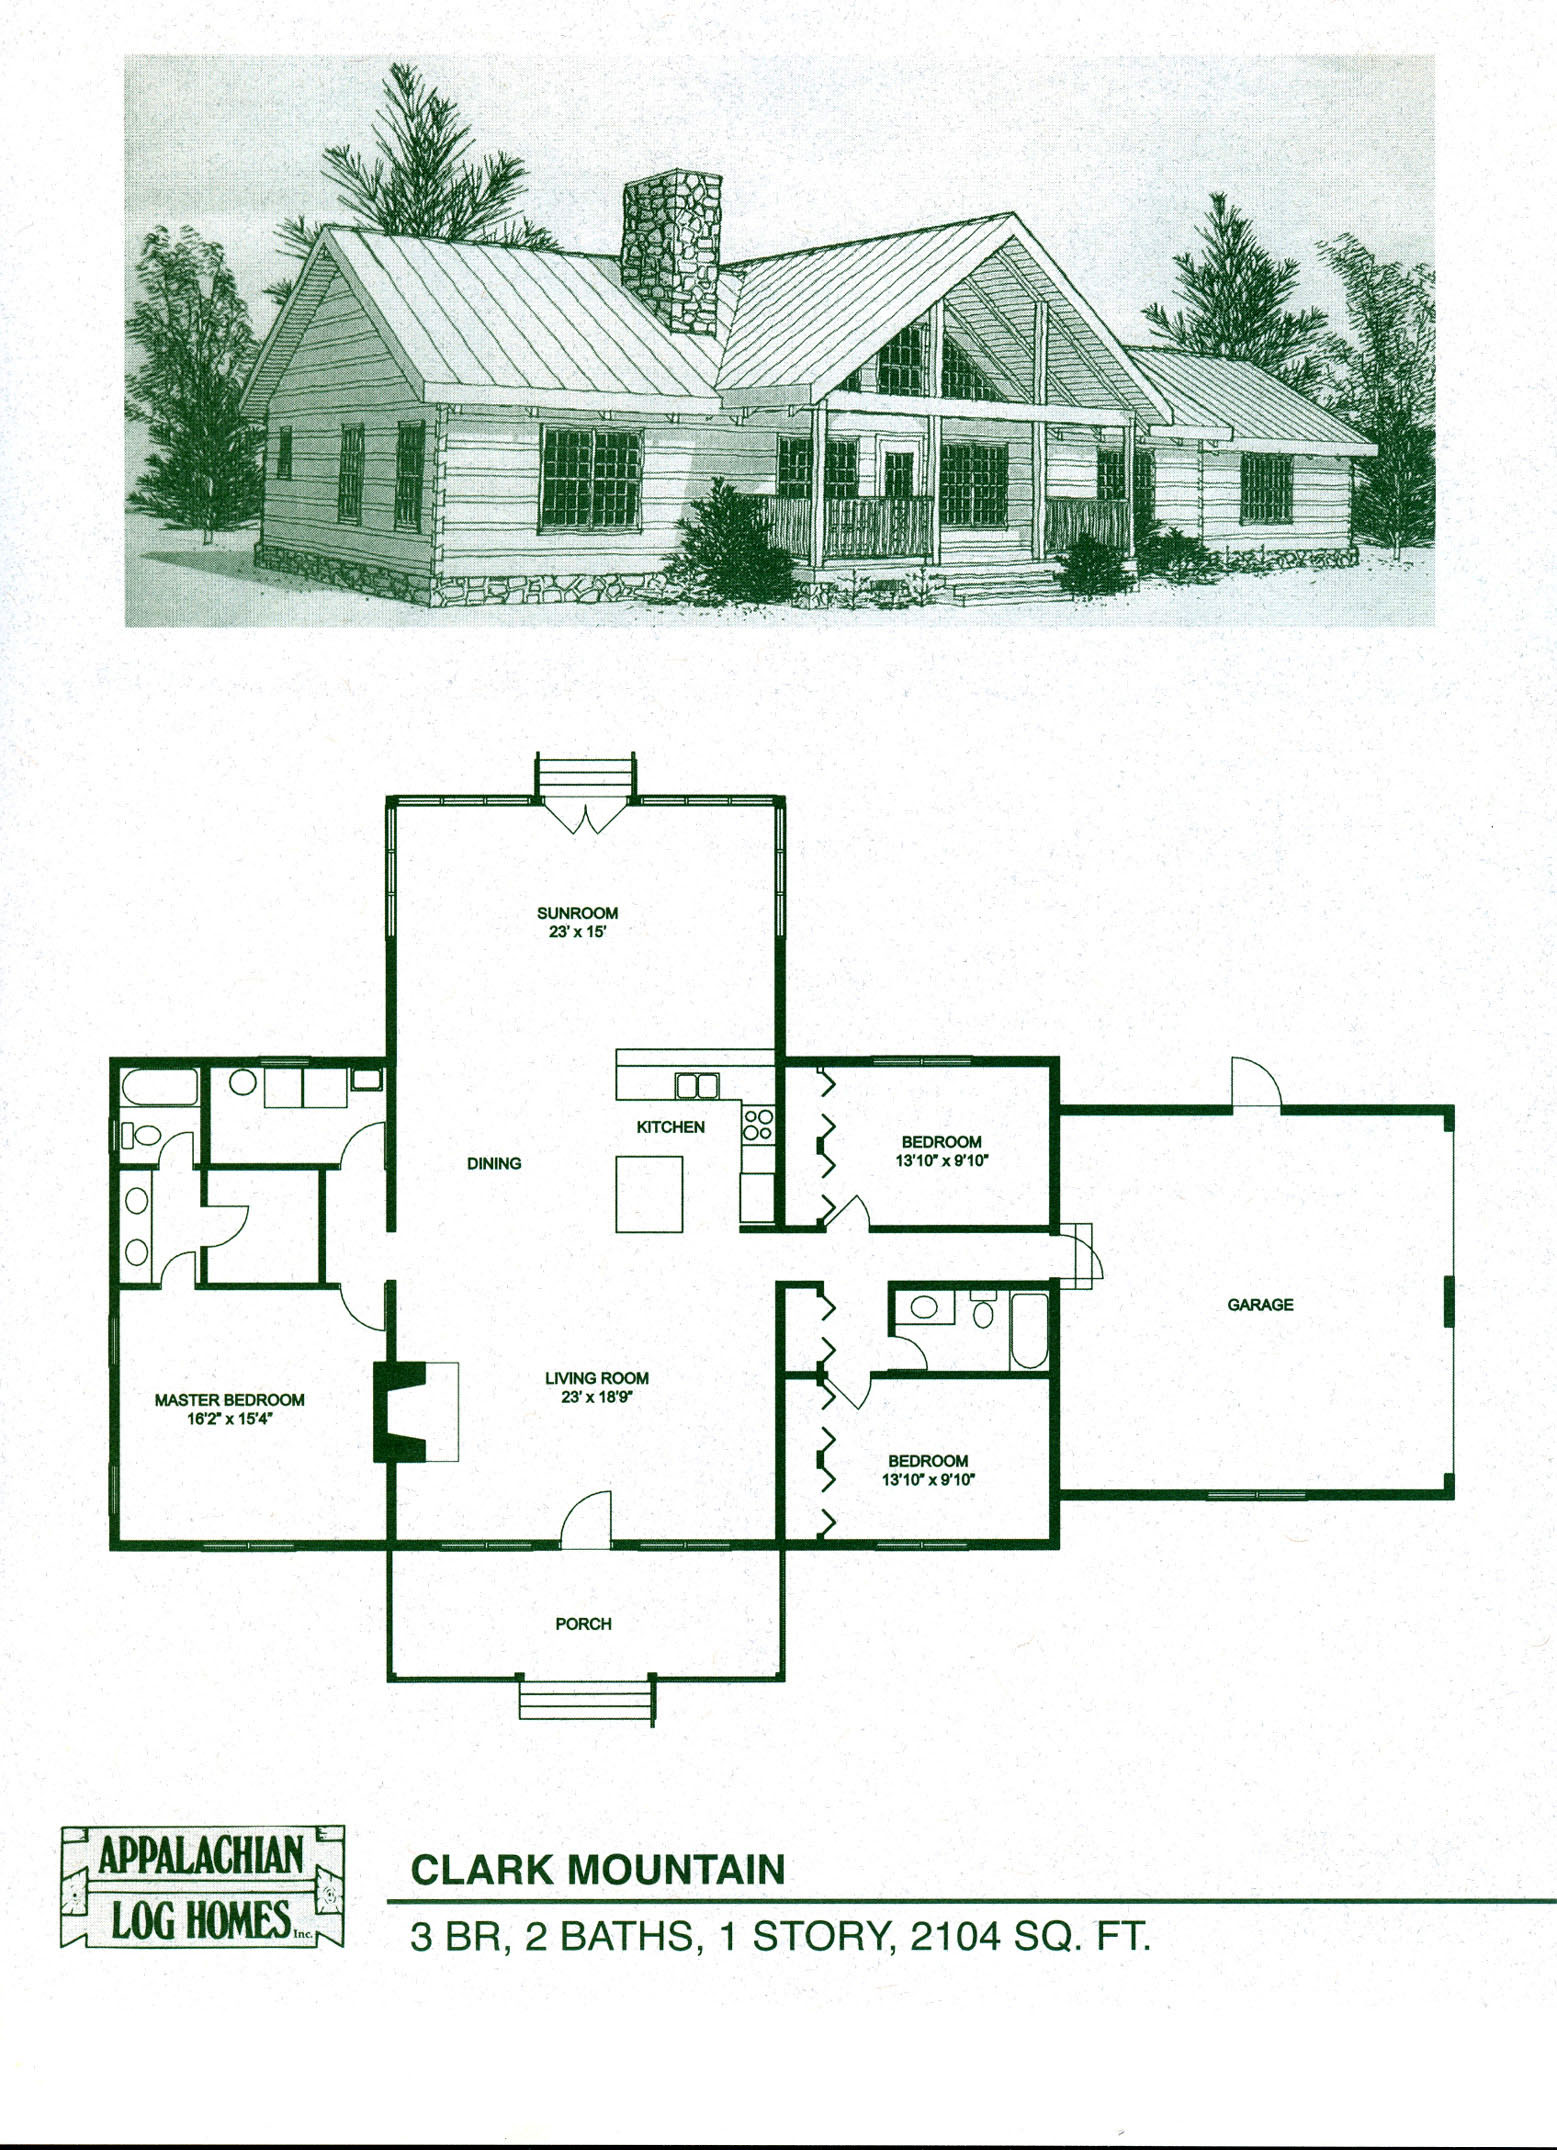 Log cabin loft 2 bedroom log cabin homes floor plans log for Lodge plans with 8 bedrooms